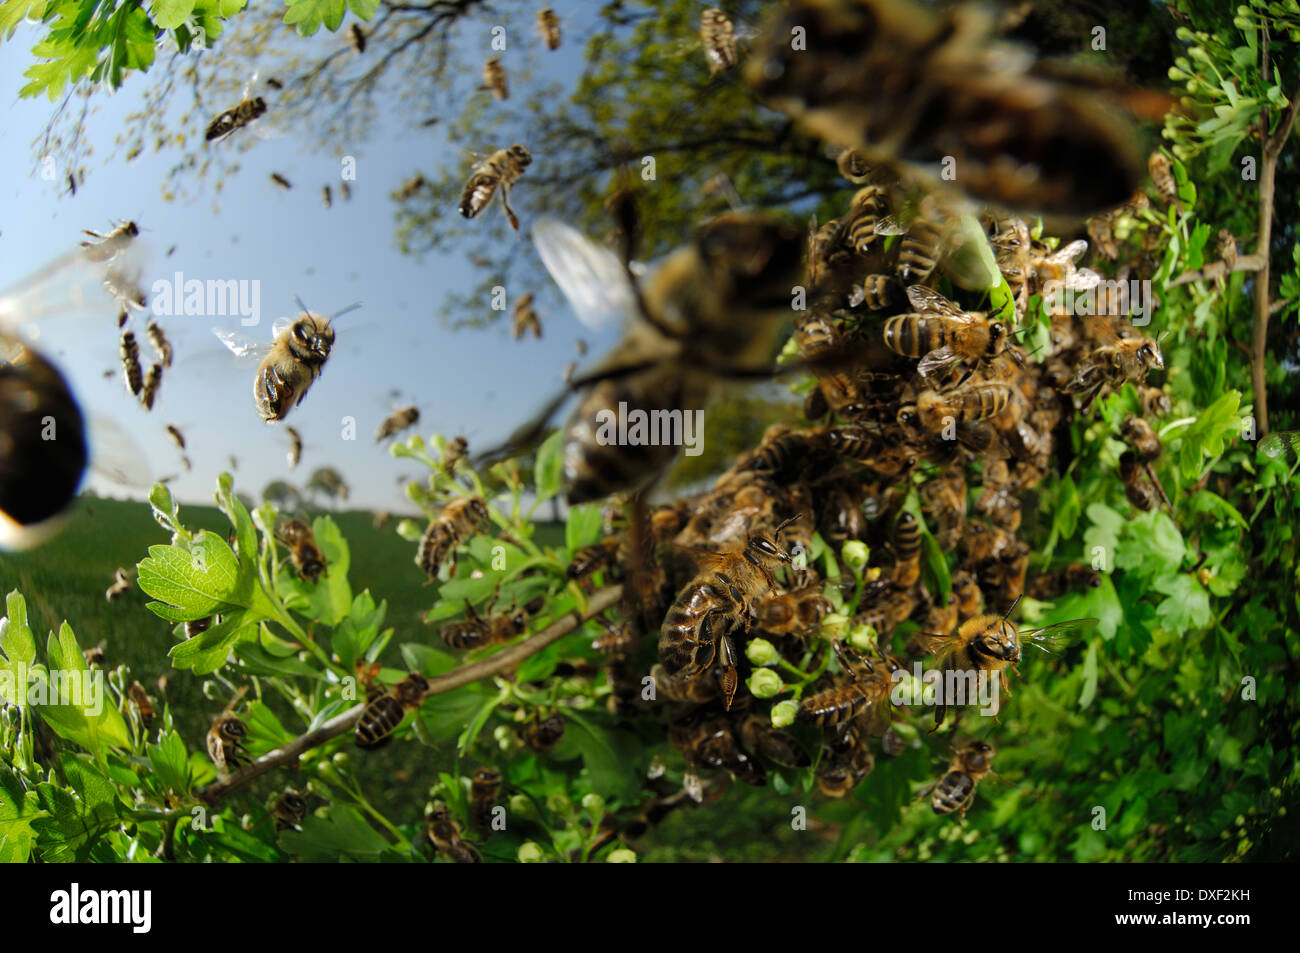 Abeille à miel (Apis mellifera) swarm Photo Stock